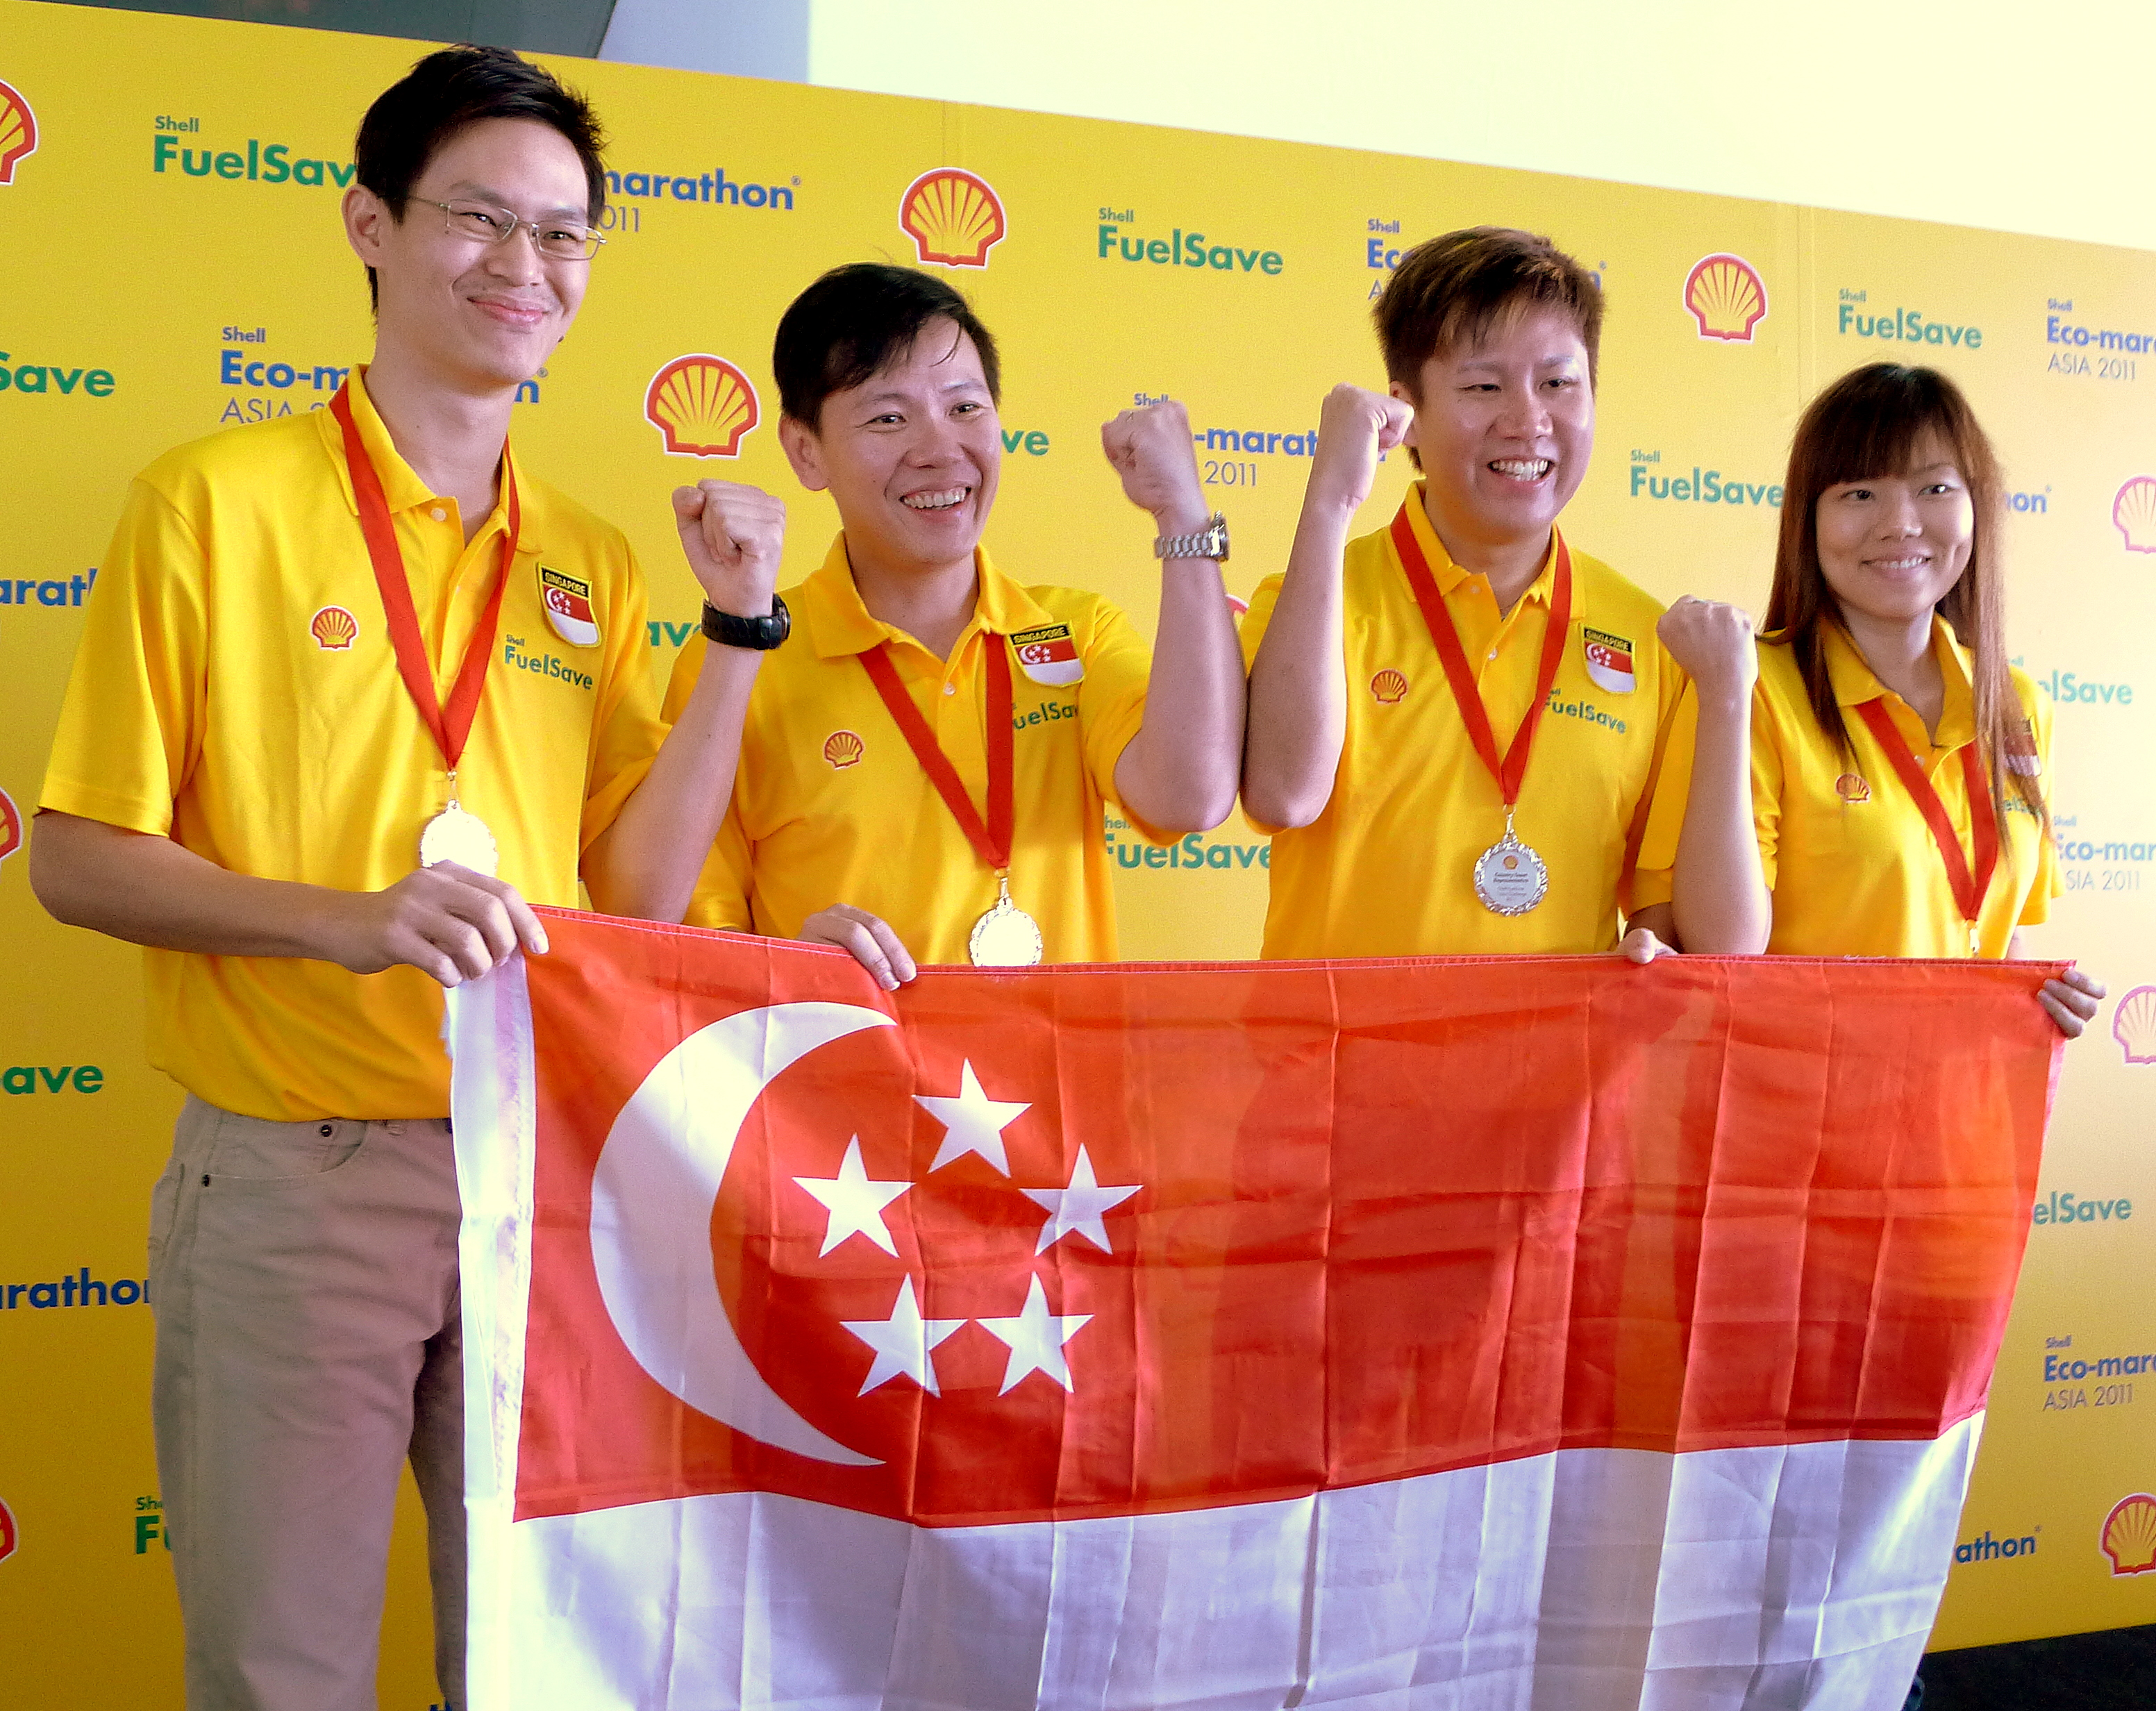 singapore shell fuel save team.jpg